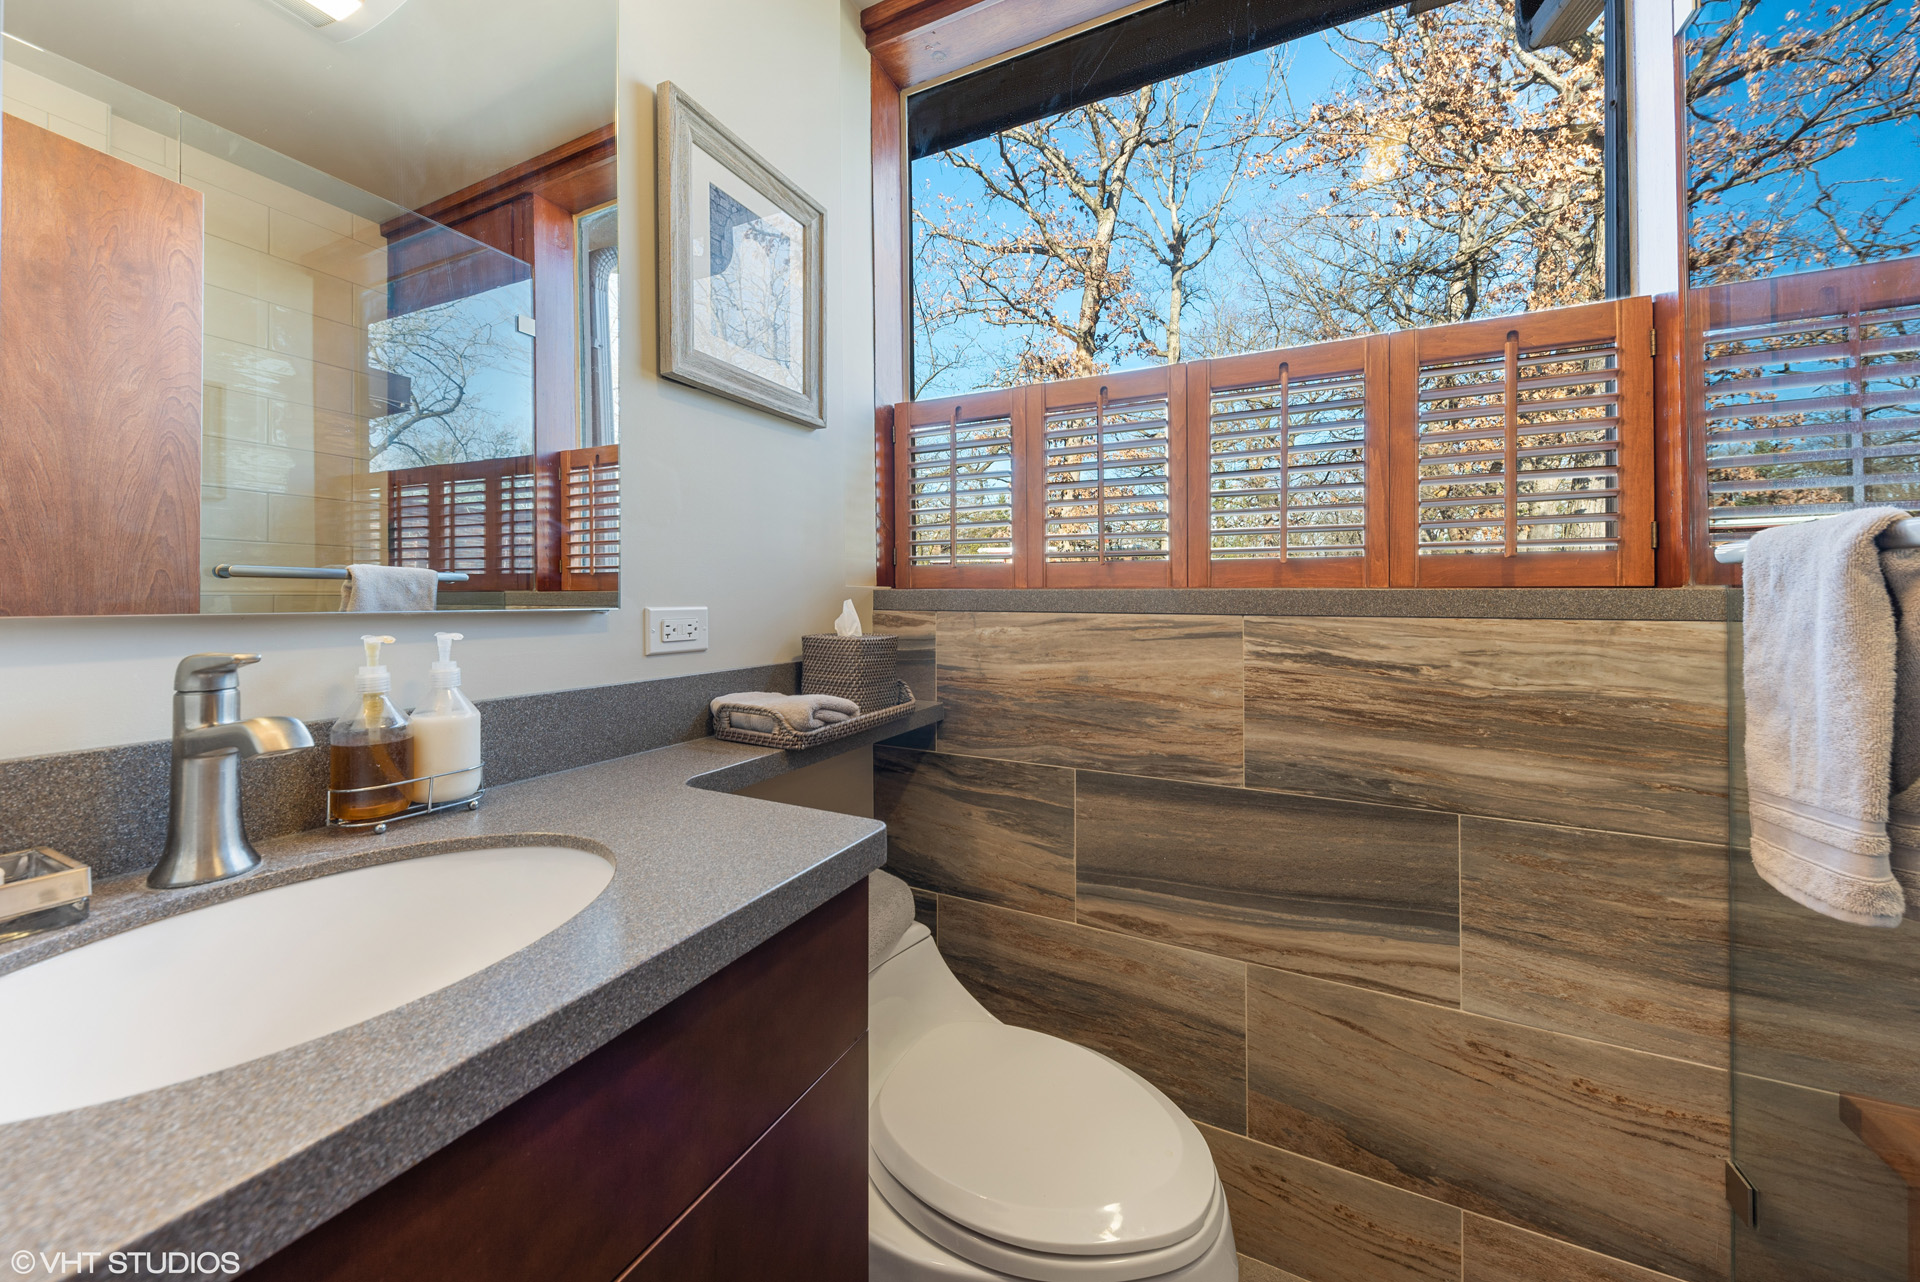 Call Lou Zucaro at 312.907.4085 or send an email to lou@modernil.com to arrange for a private showing of 4N151 Briar Ln in Bensenville